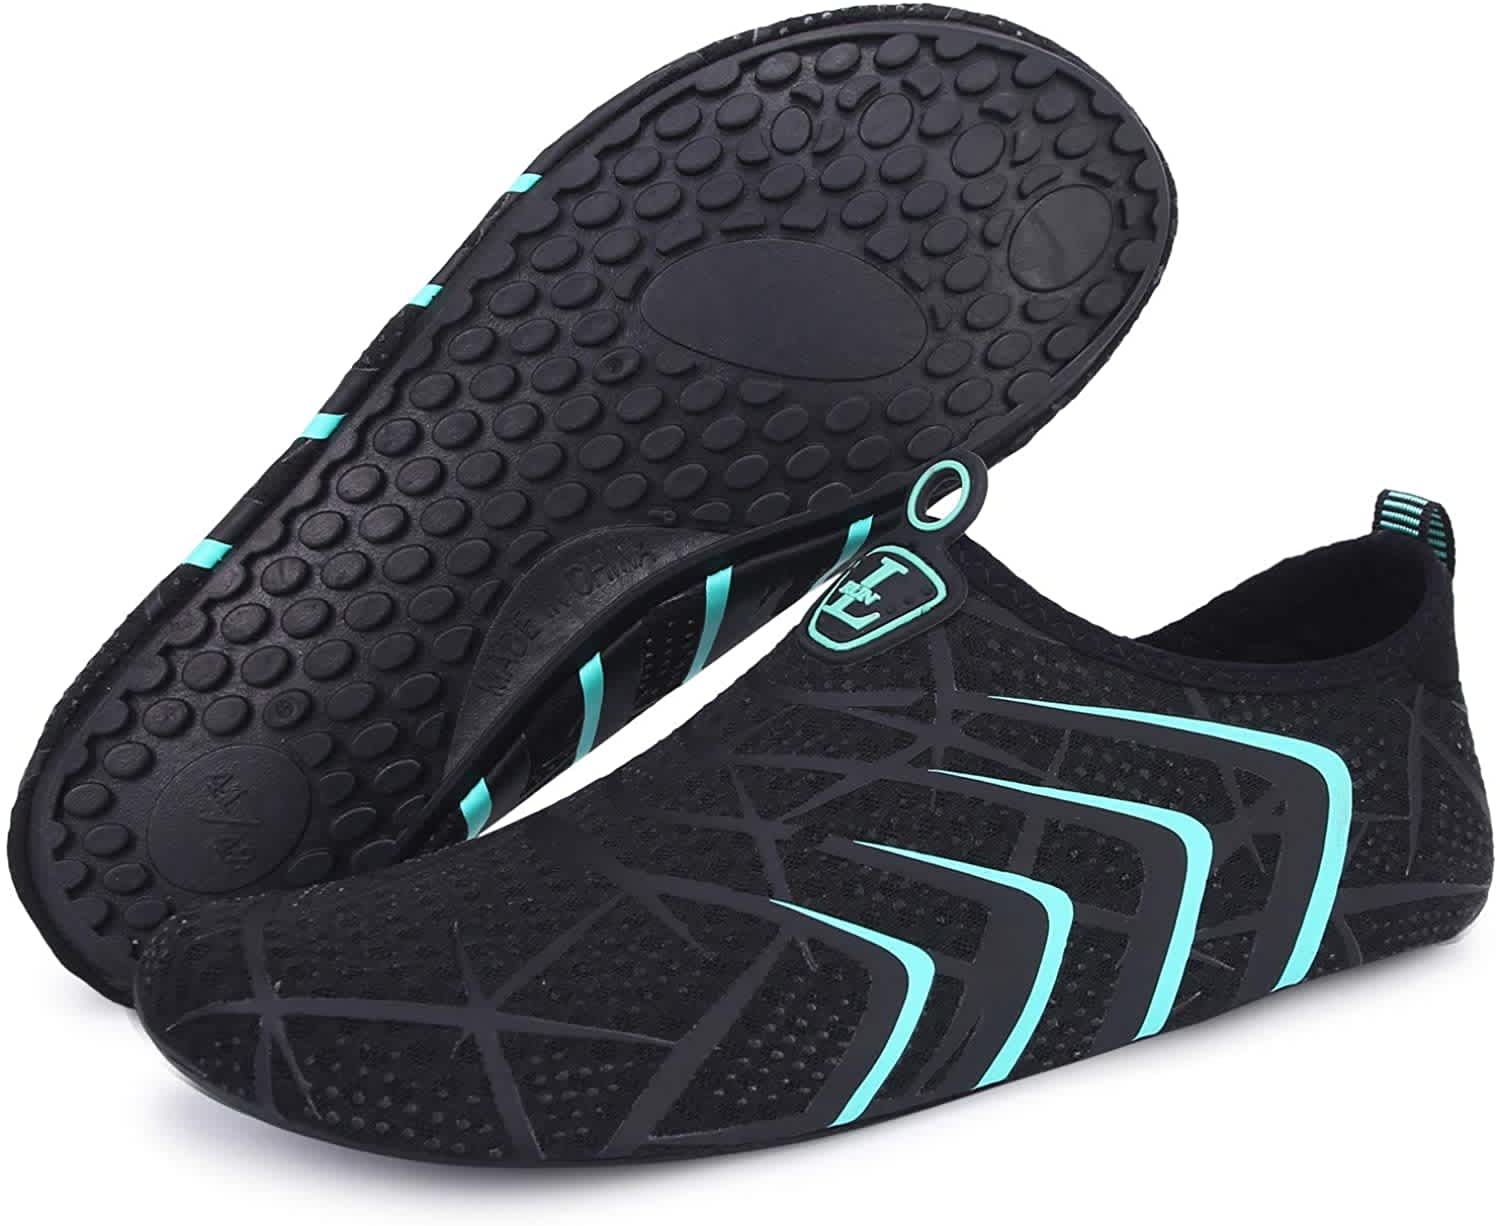 L-RUN Unisex Water Shoes